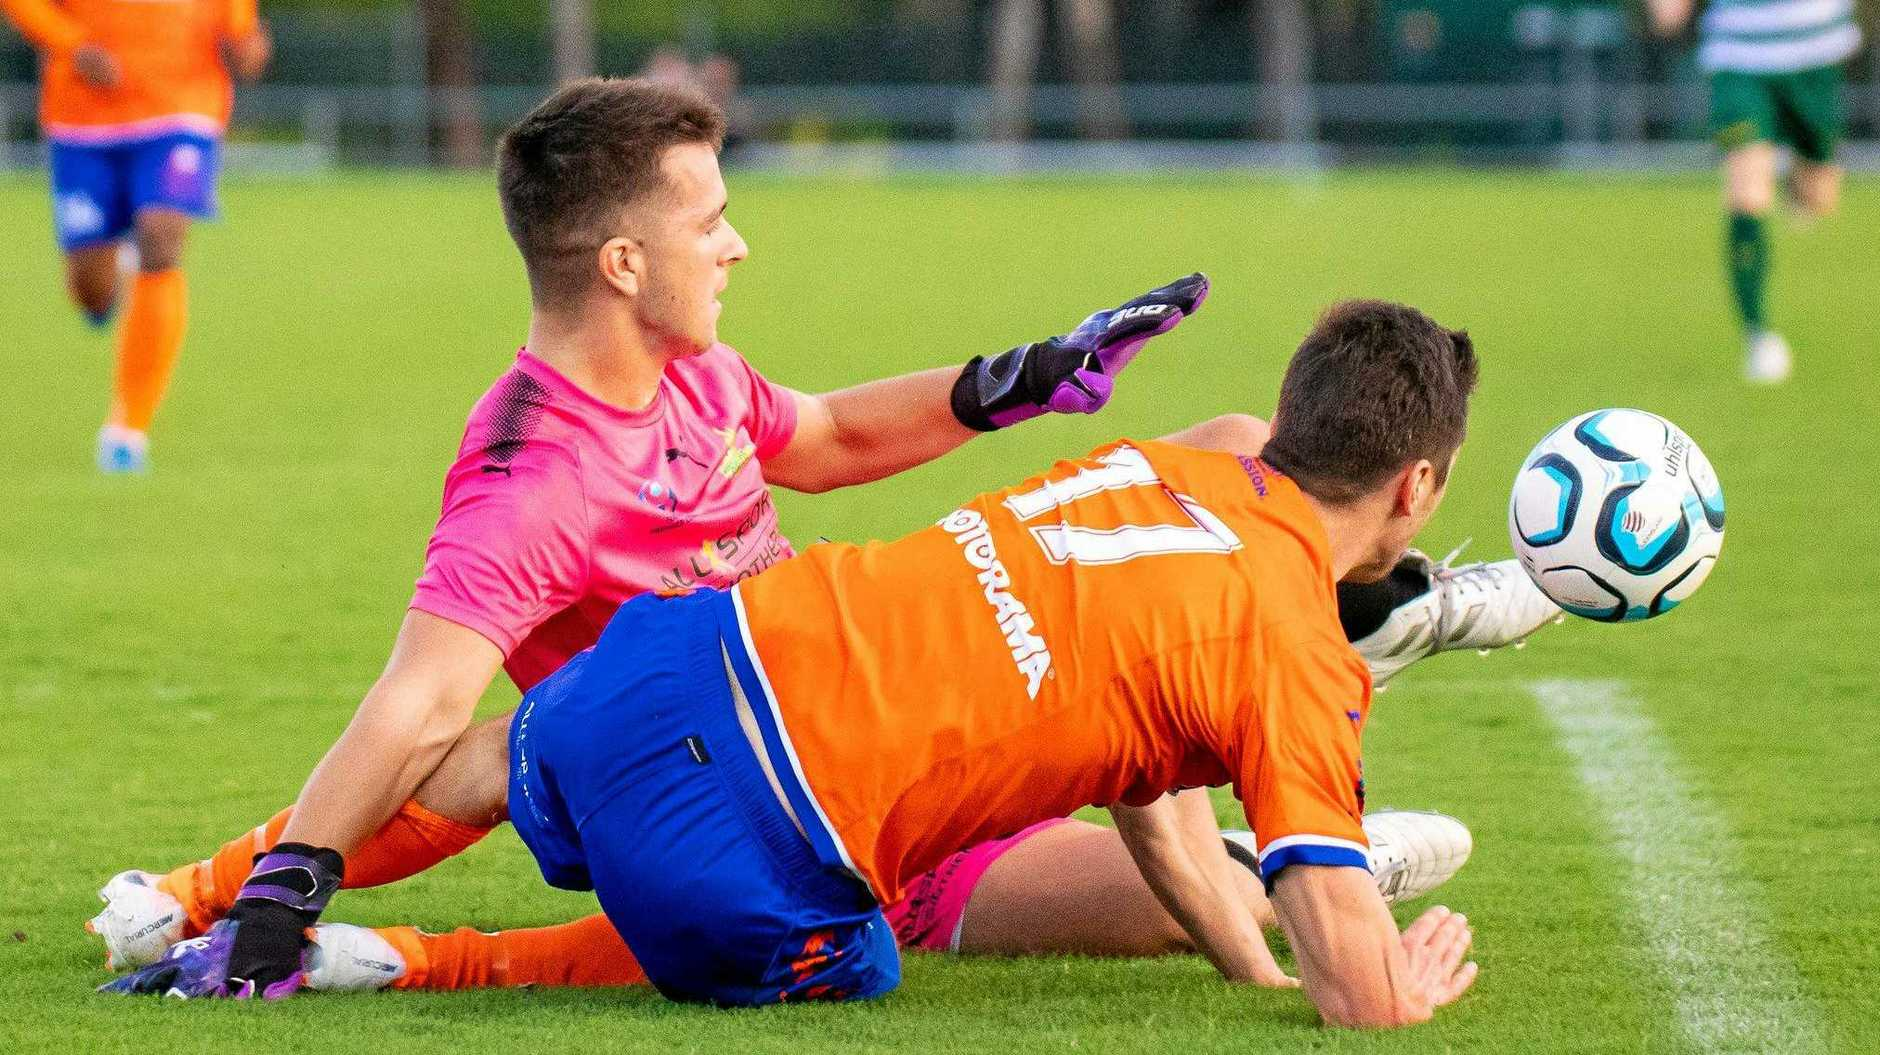 TOUGH WORKOUT: Western Pride goalkeeper Griffin Bambach made some great saves in his team's latest 2-0 loss to NPL leaders Lions.